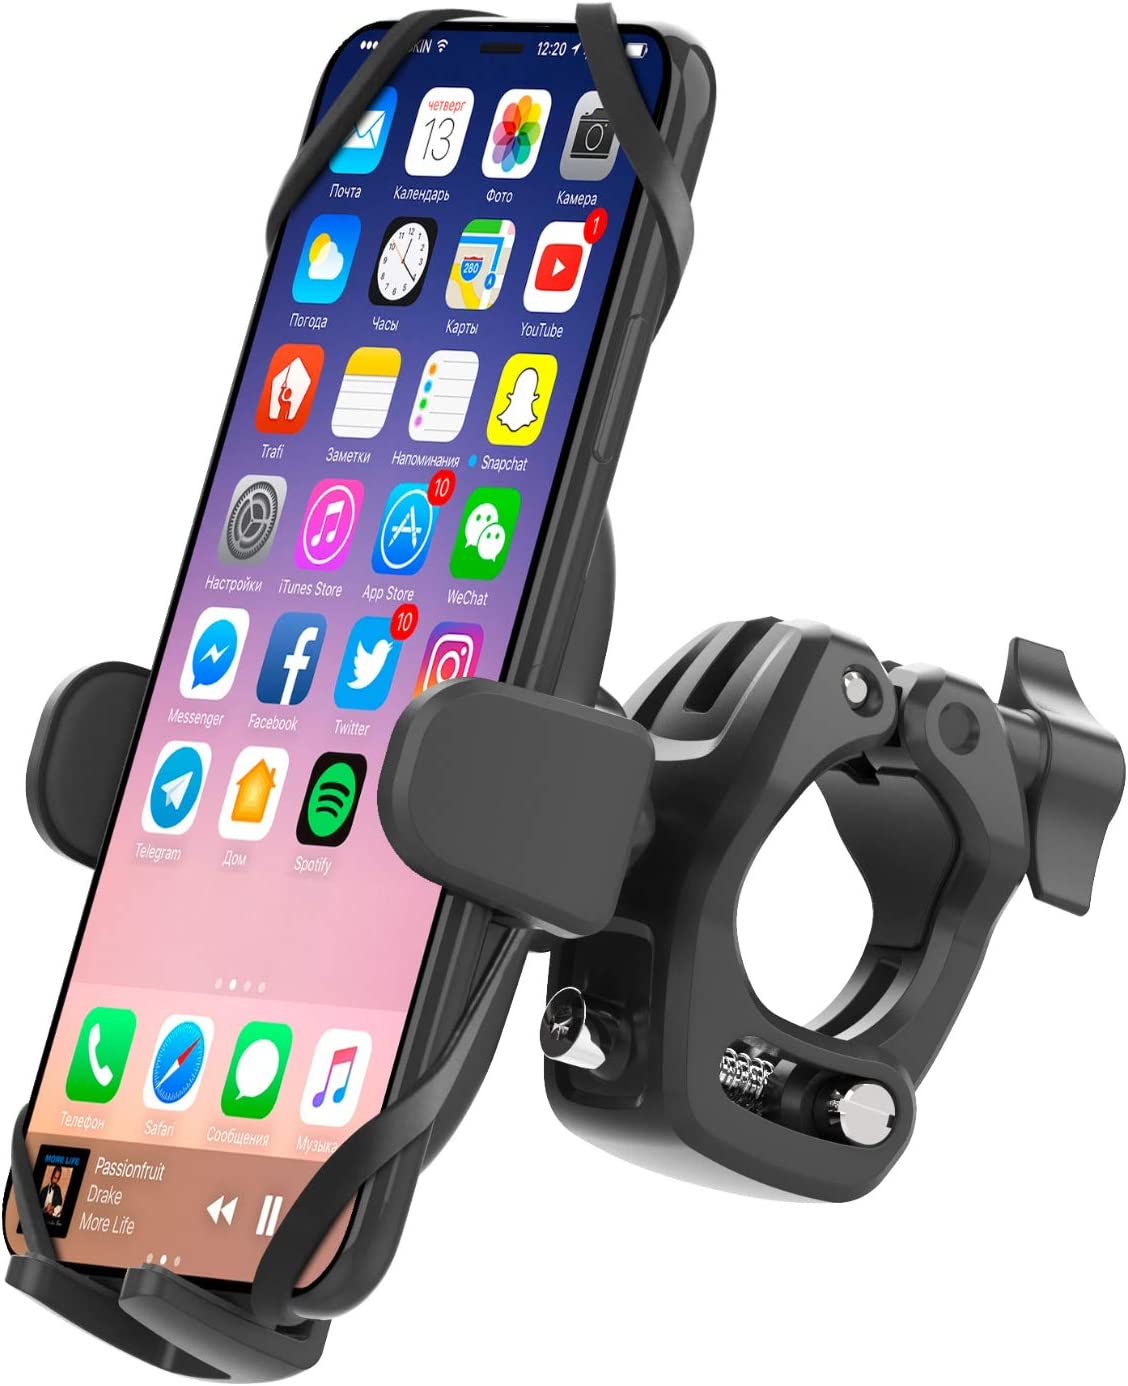 APPS2Car Bicycle /& Motorcycle Phone Mount 360 Rotation Universal Cell Phone Holder For Bike Adjustable Handlebar Holder Compatible with iPhone SE2//11 Pro//11//Max//XS//XR//X//8 4.7-6.8 inch Samsung Galaxy